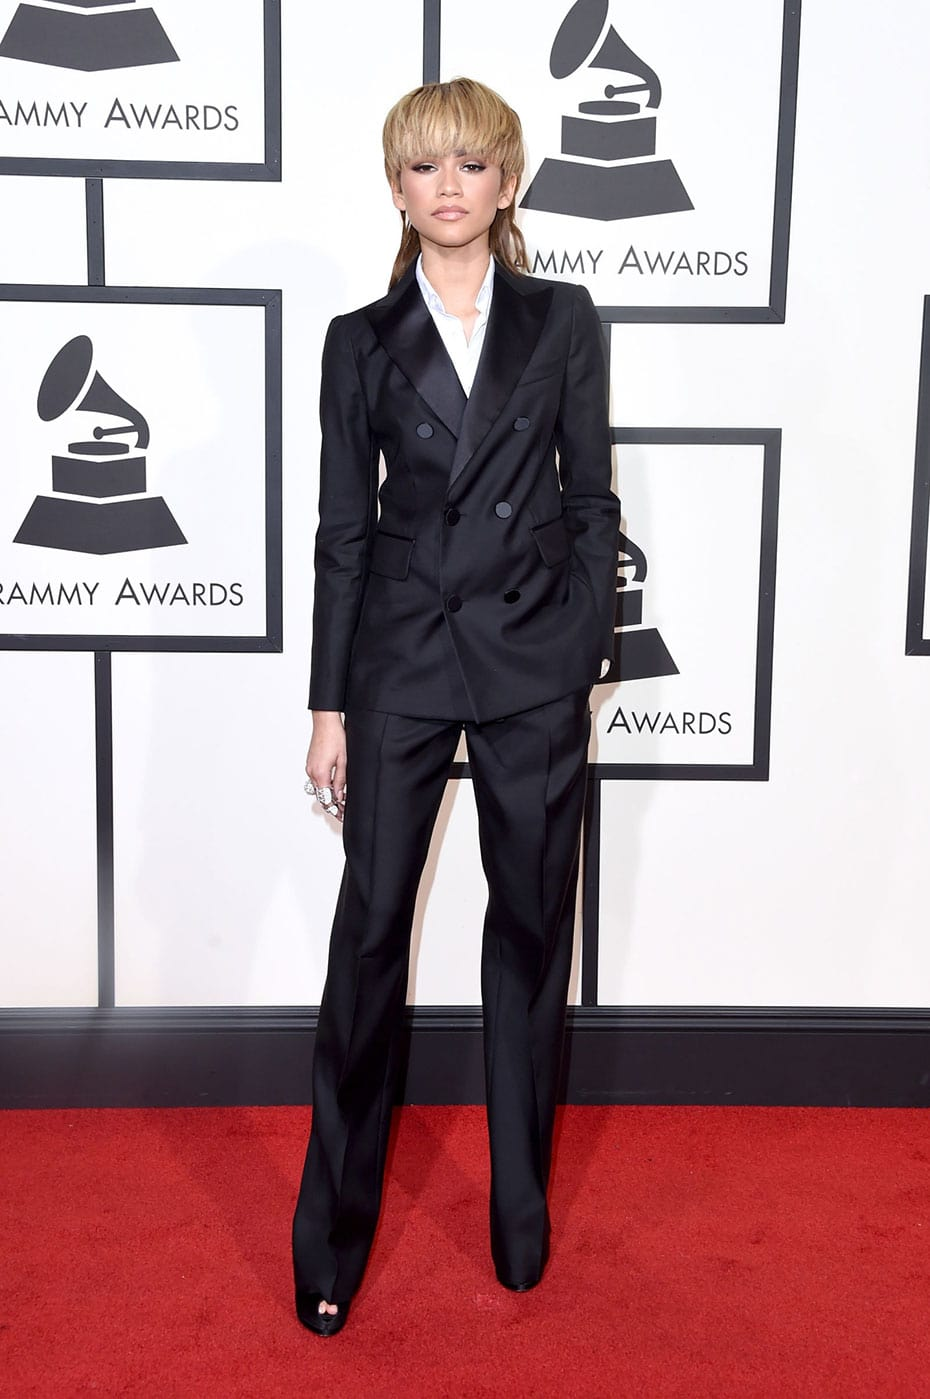 Zendaya in DSquared2 at the 2016 Grammy Awards